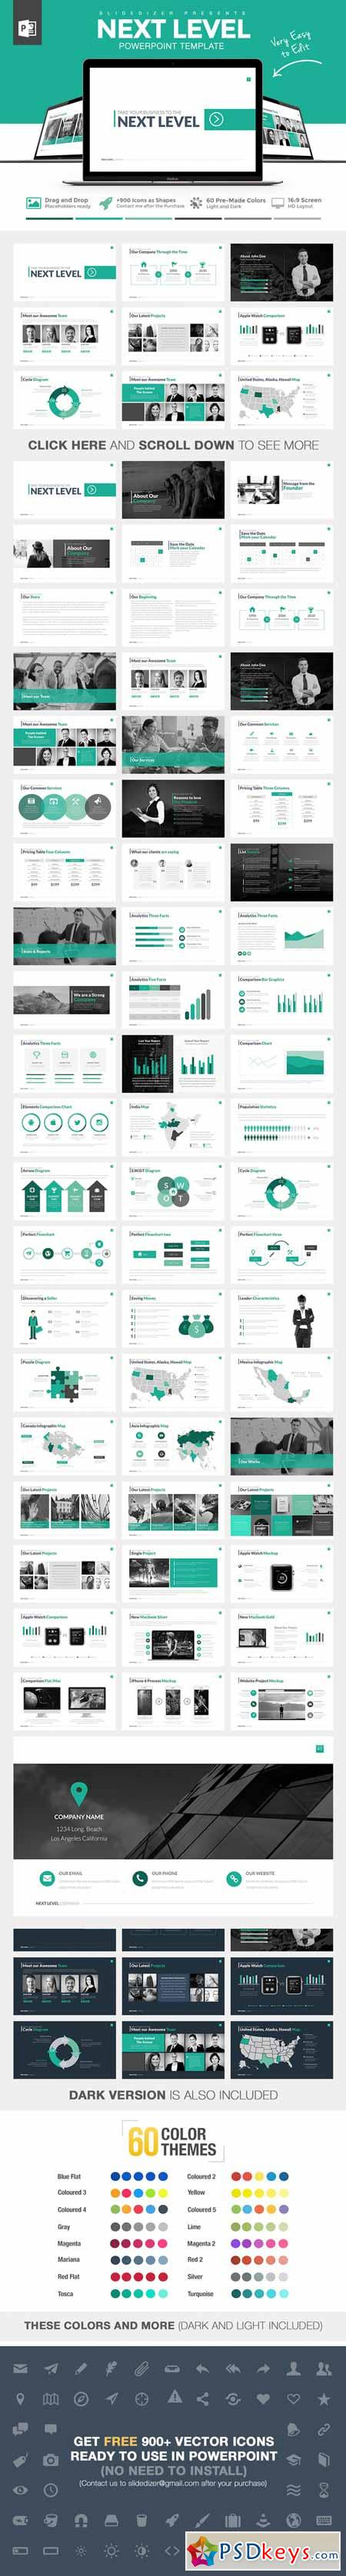 powerpoint templates torrents - next level powerpoint template 263297 free download